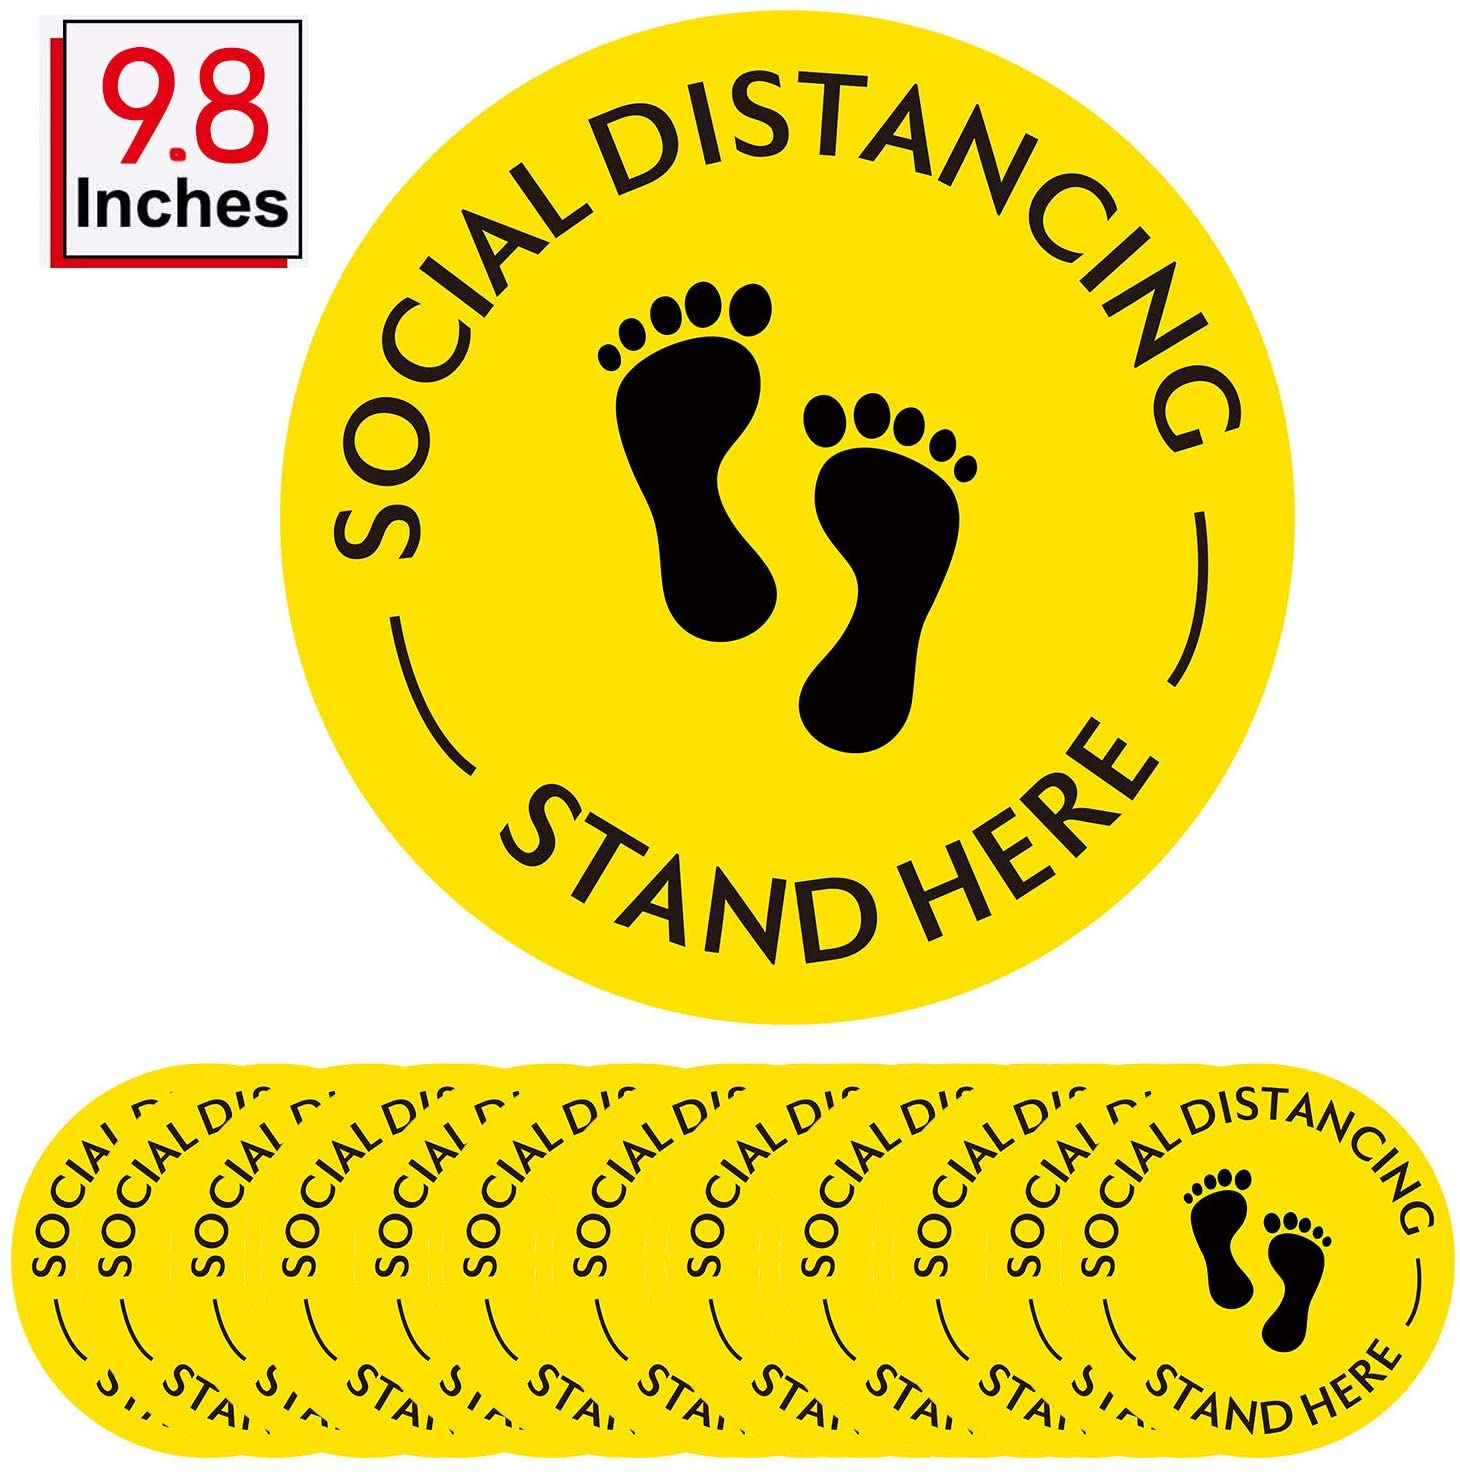 9.8 Inch High Visibility Social Distancing Floor Sticker Decals Safety Floor Sign Marker 6 Feet Social Distancing Floor Signs (10)